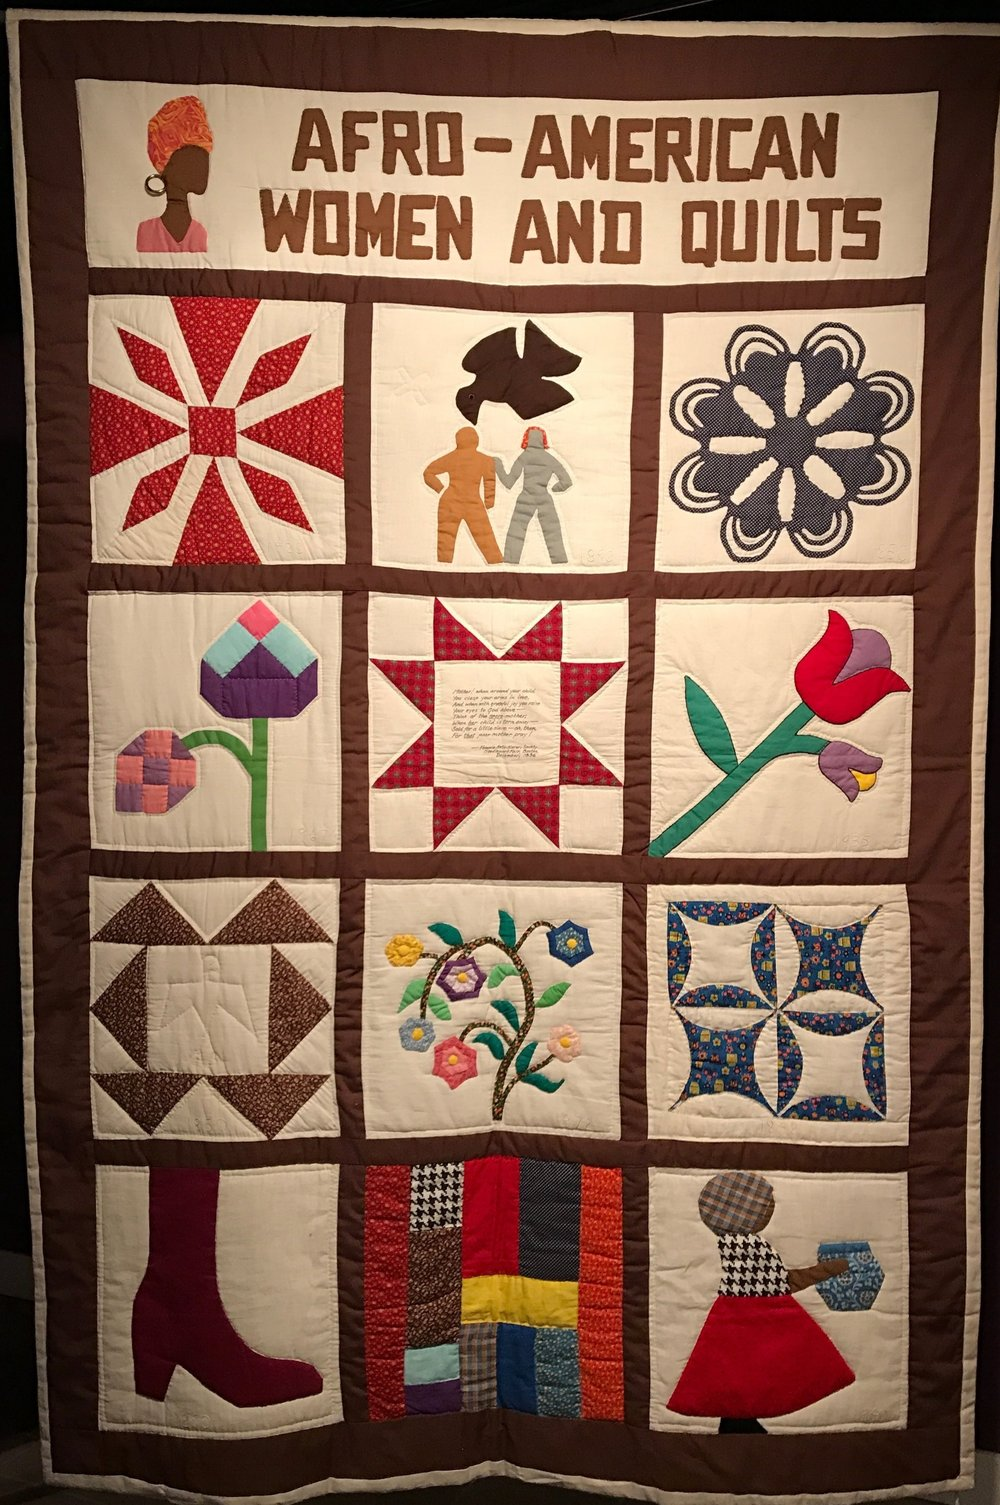 This is the one quilt in the exhibit that Cuesta made herself. Quilting has a rich history in America and in the African-American community. It contains elements from some of the other quilts on display, like the W.P.A. tulip quilt. It's hard to see in this photograph, but each block has the date the quilt it's inspired by was made stitched in. (The shoe is from 1890.)